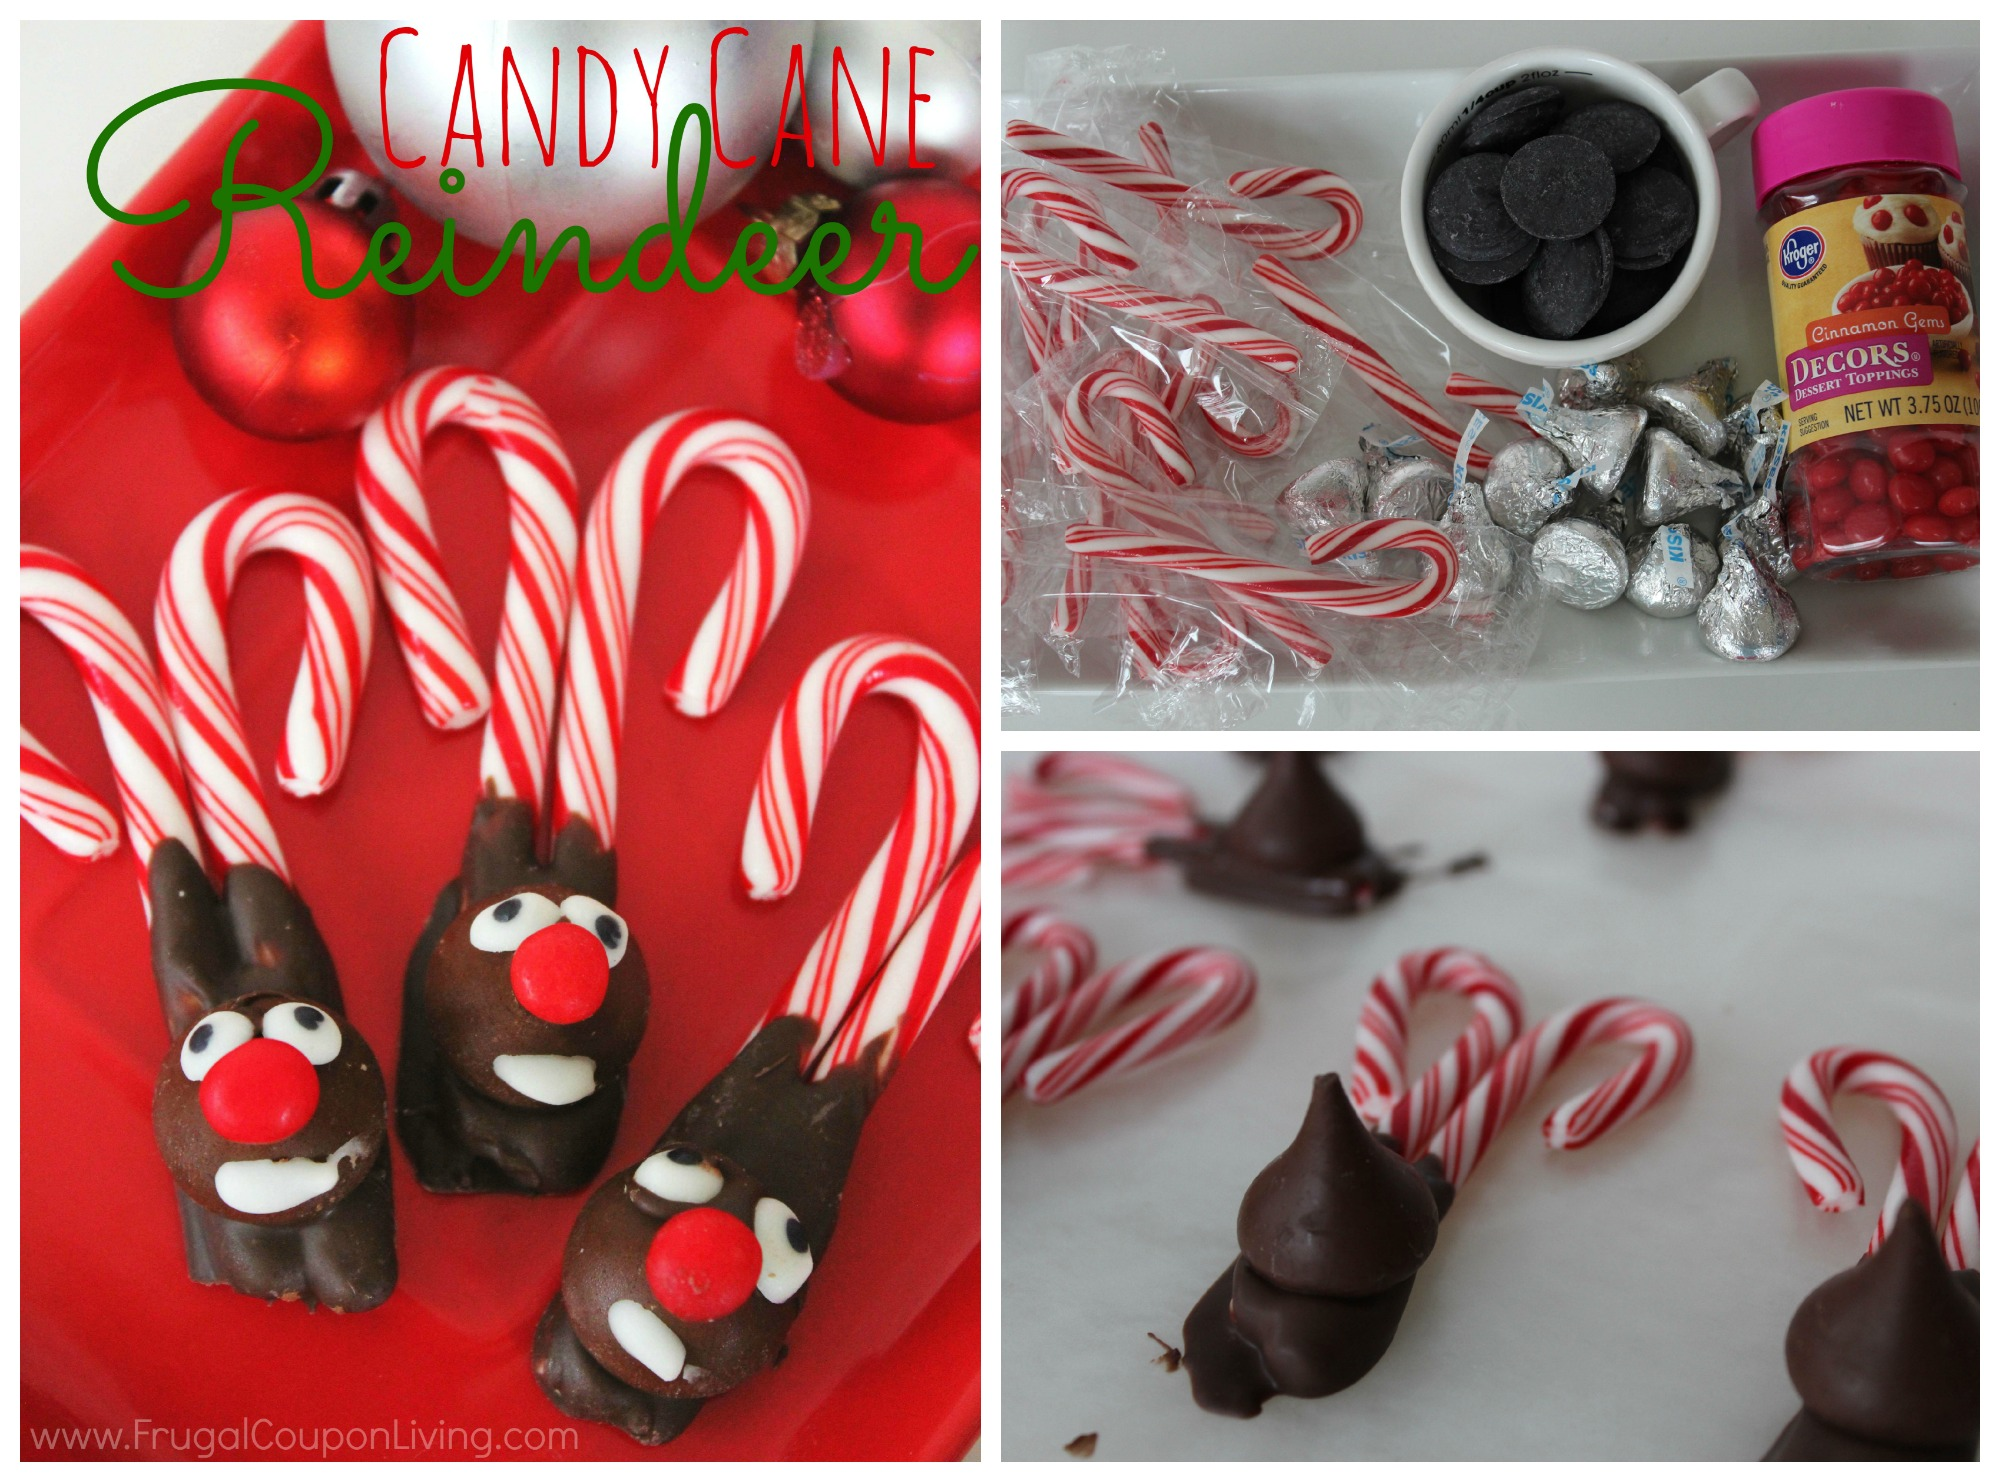 candy-cane-reindeer-frugal-coupon-living-collage